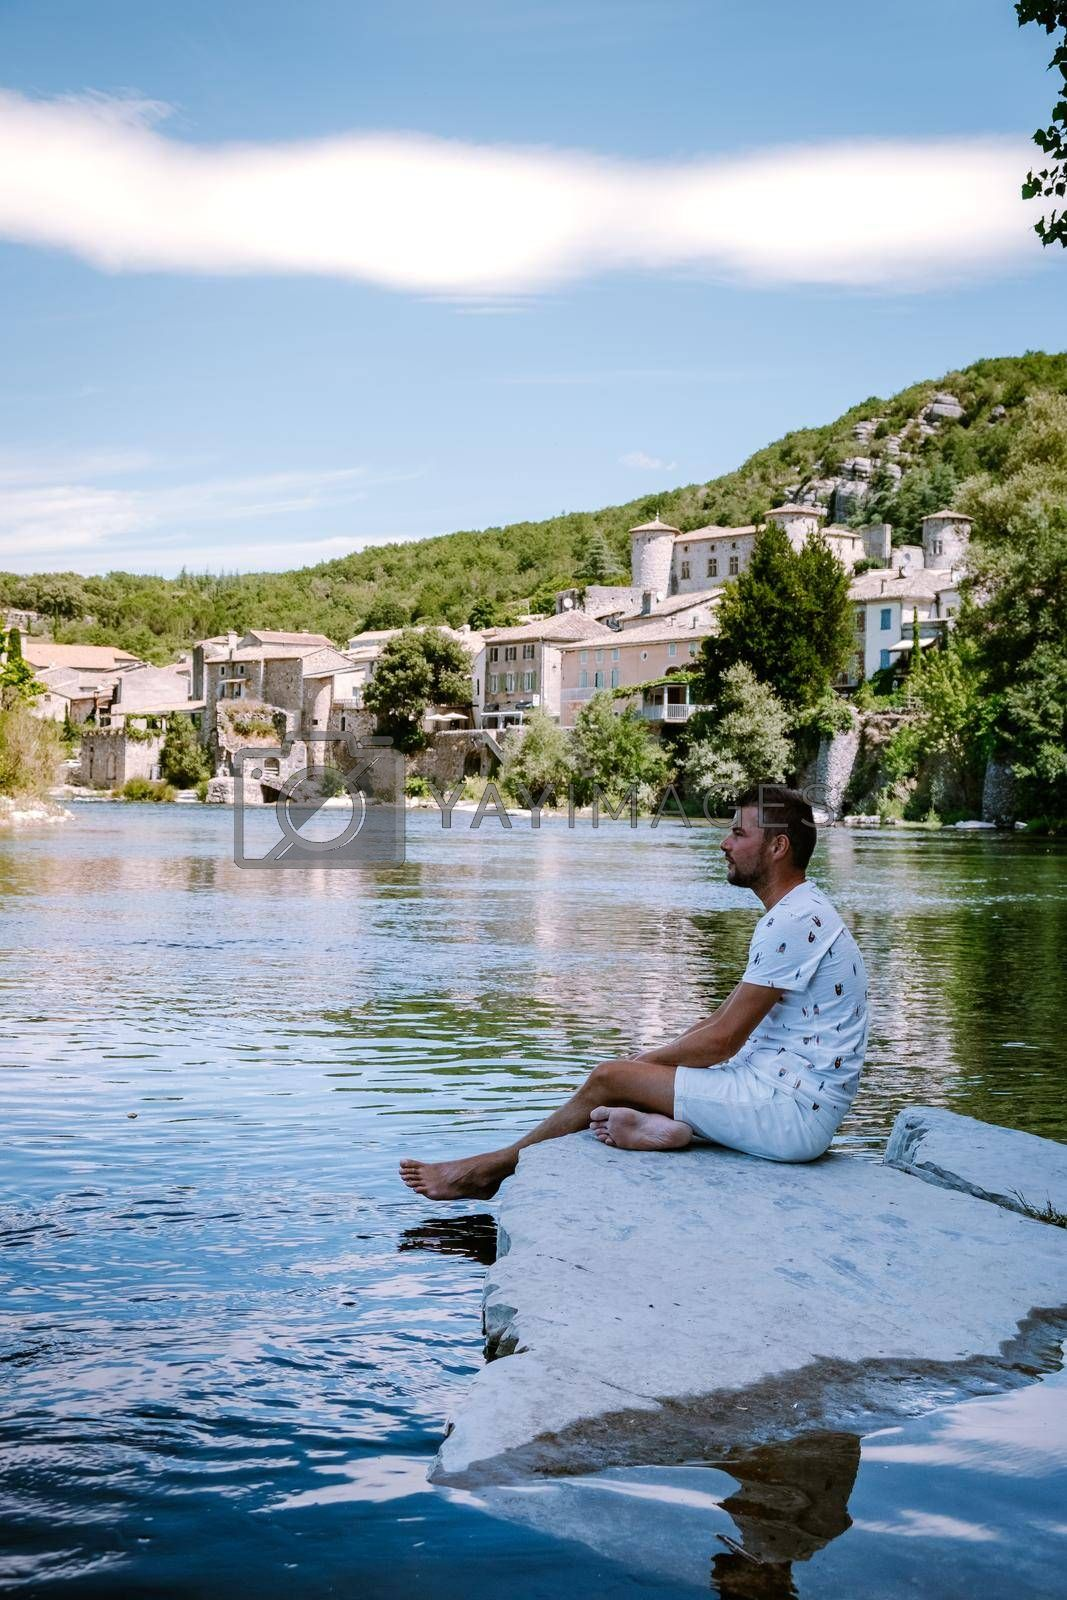 guy on vacation in Ardeche France, view of the village of Vogue in Ardeche. France Europe